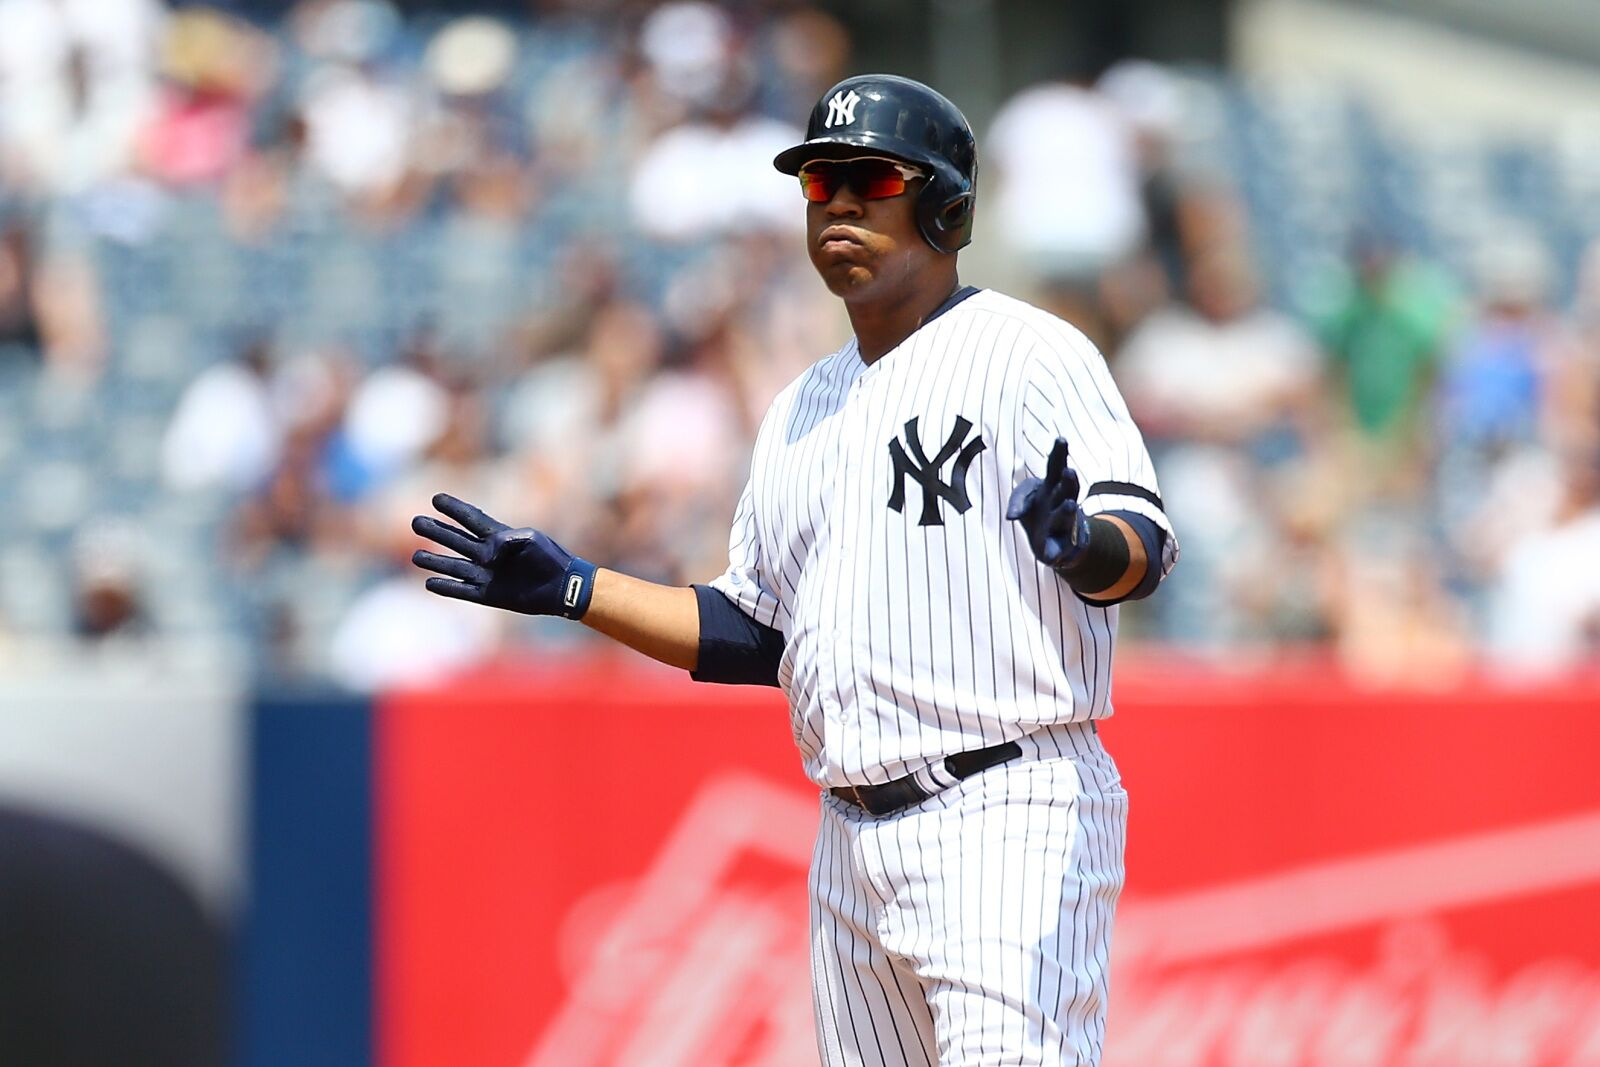 Yankees: Will they bring back Edwin Encarnacion in 2020?